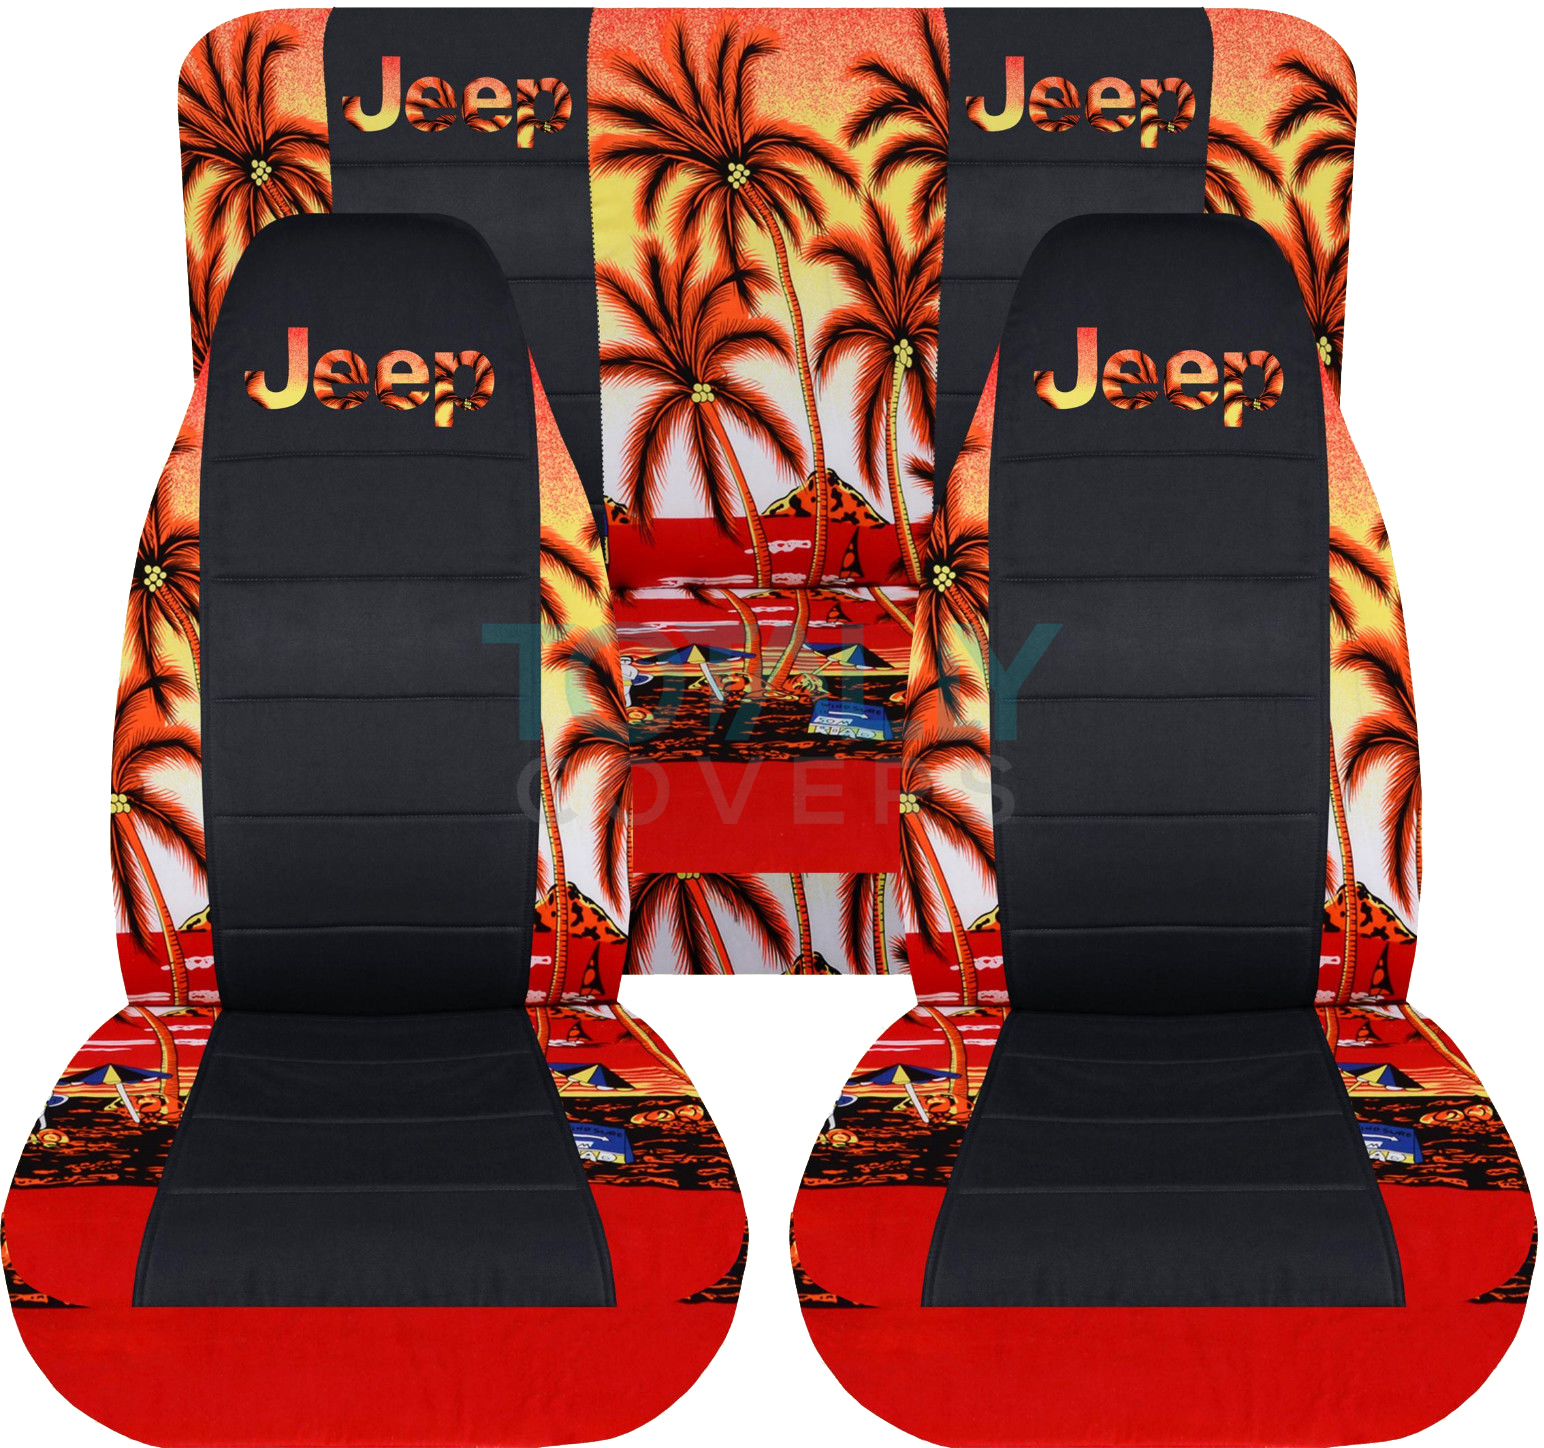 hawaiian chair covers original eames colors jeep wrangler red w palm tree and black seat